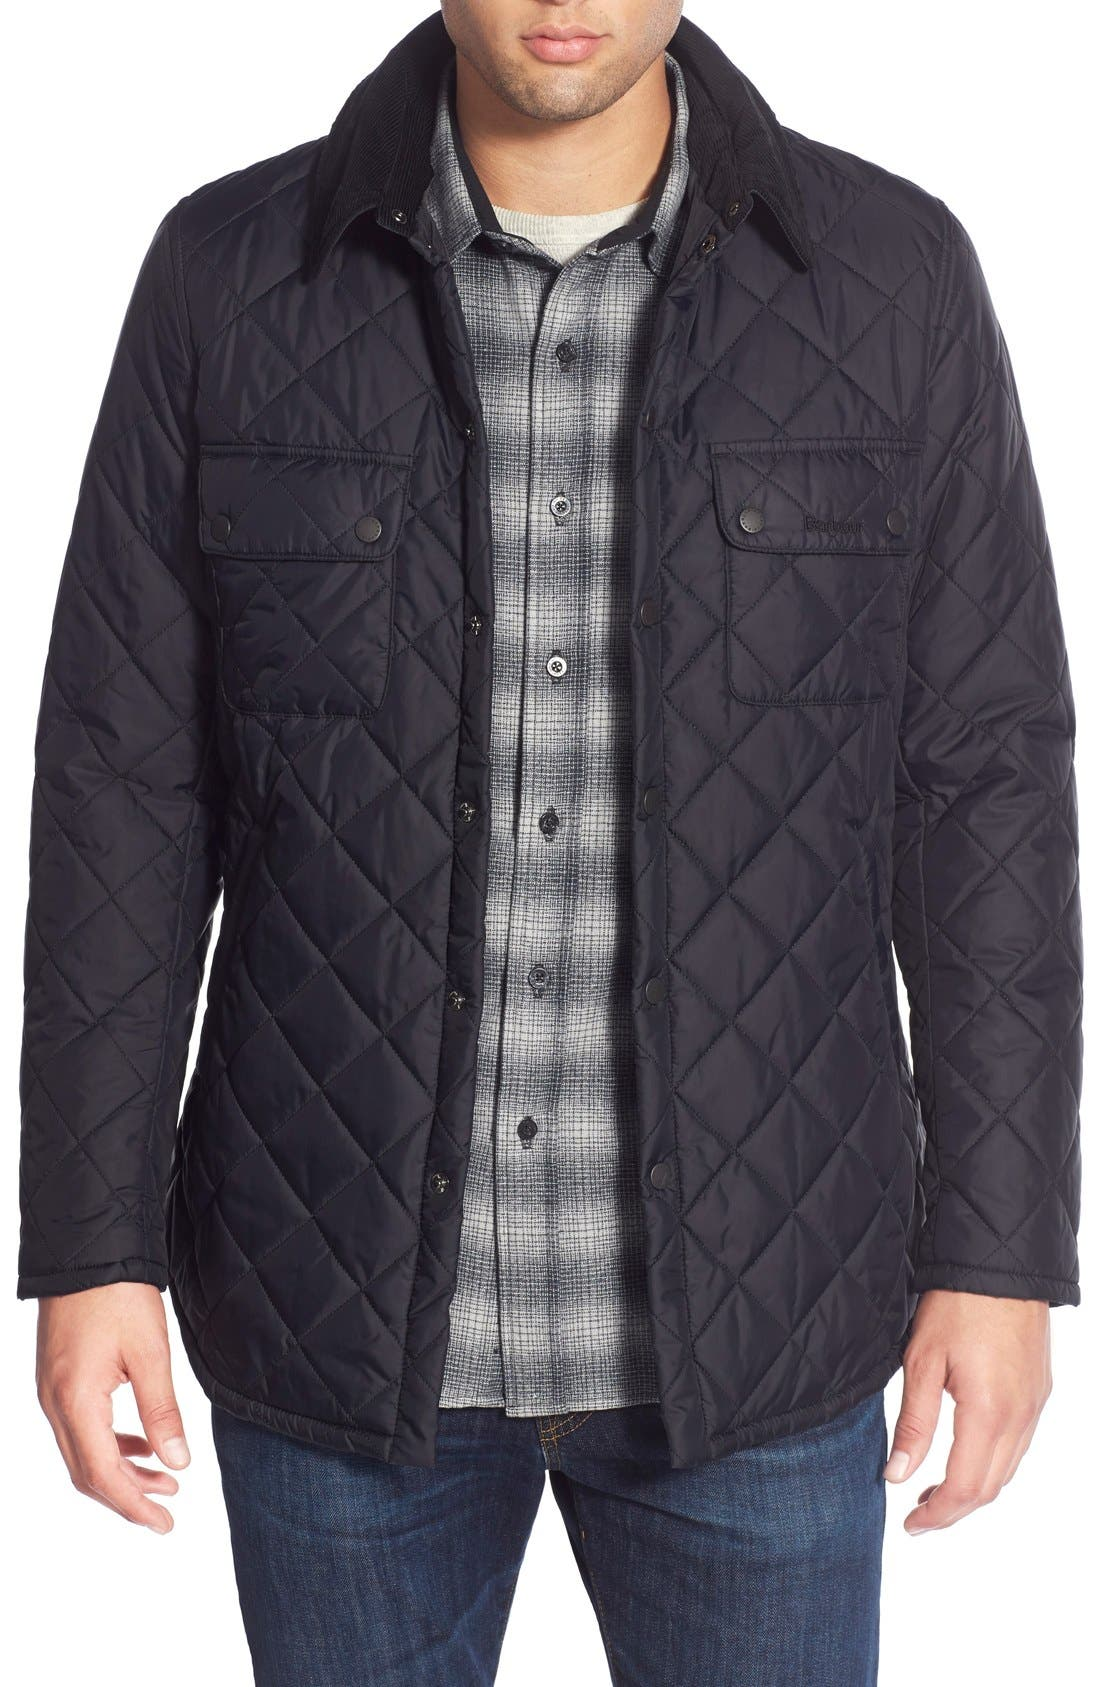 Alternate Image 1 Selected - Barbour 'Akenside' Regular Fit Quilted Jacket